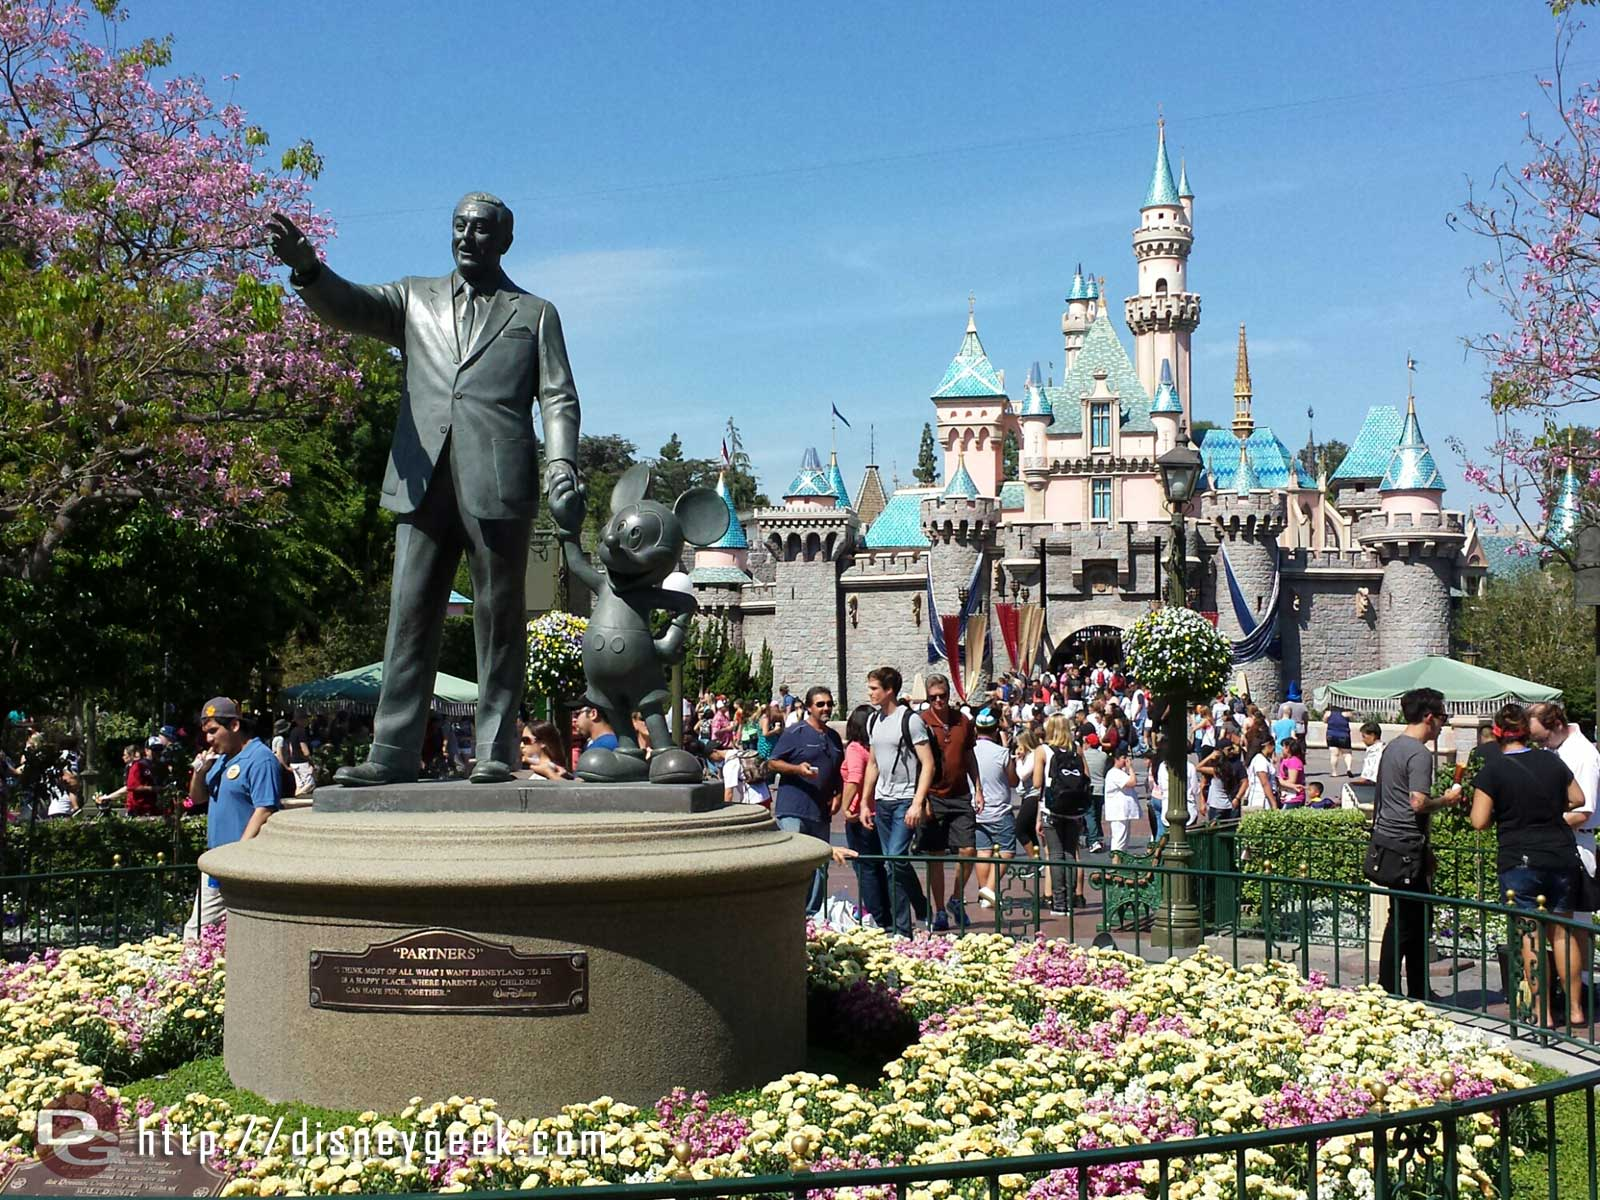 The Partners Statue in front of Sleeping Beauty Castle #Disneyland this spring afternoon